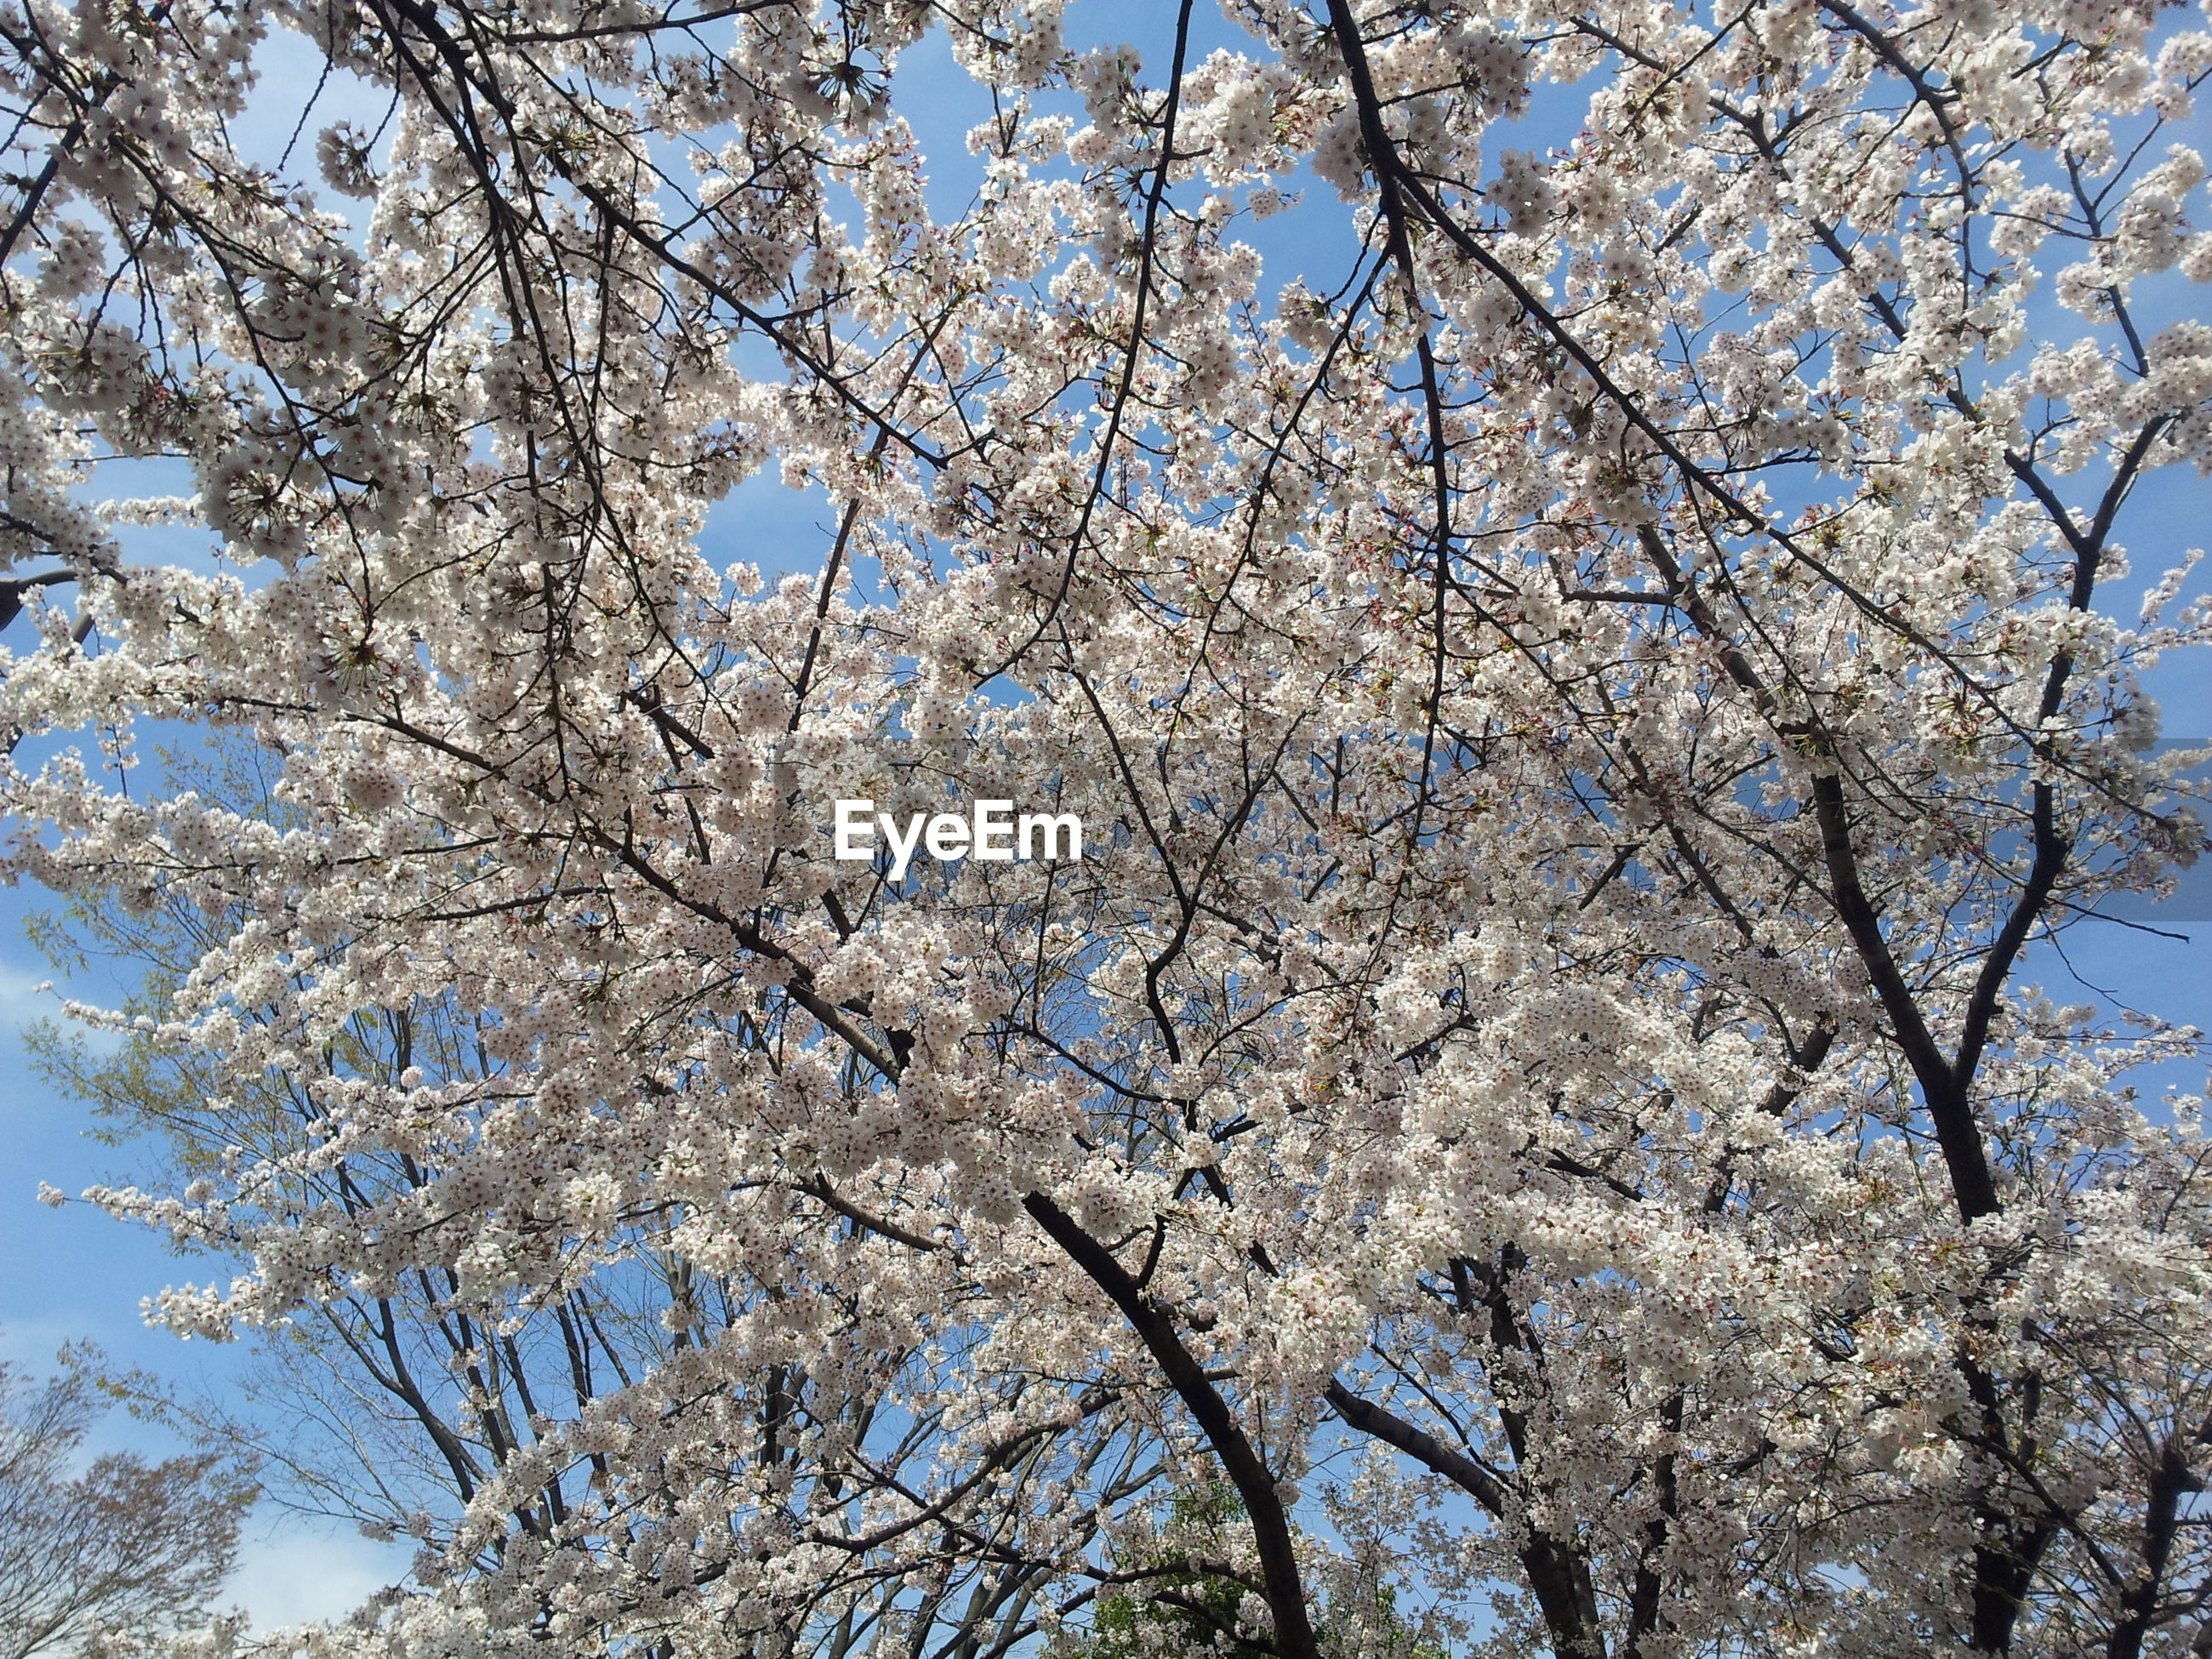 flower, branch, tree, low angle view, freshness, growth, cherry blossom, beauty in nature, fragility, blossom, nature, cherry tree, in bloom, springtime, clear sky, blooming, white color, sky, day, fruit tree